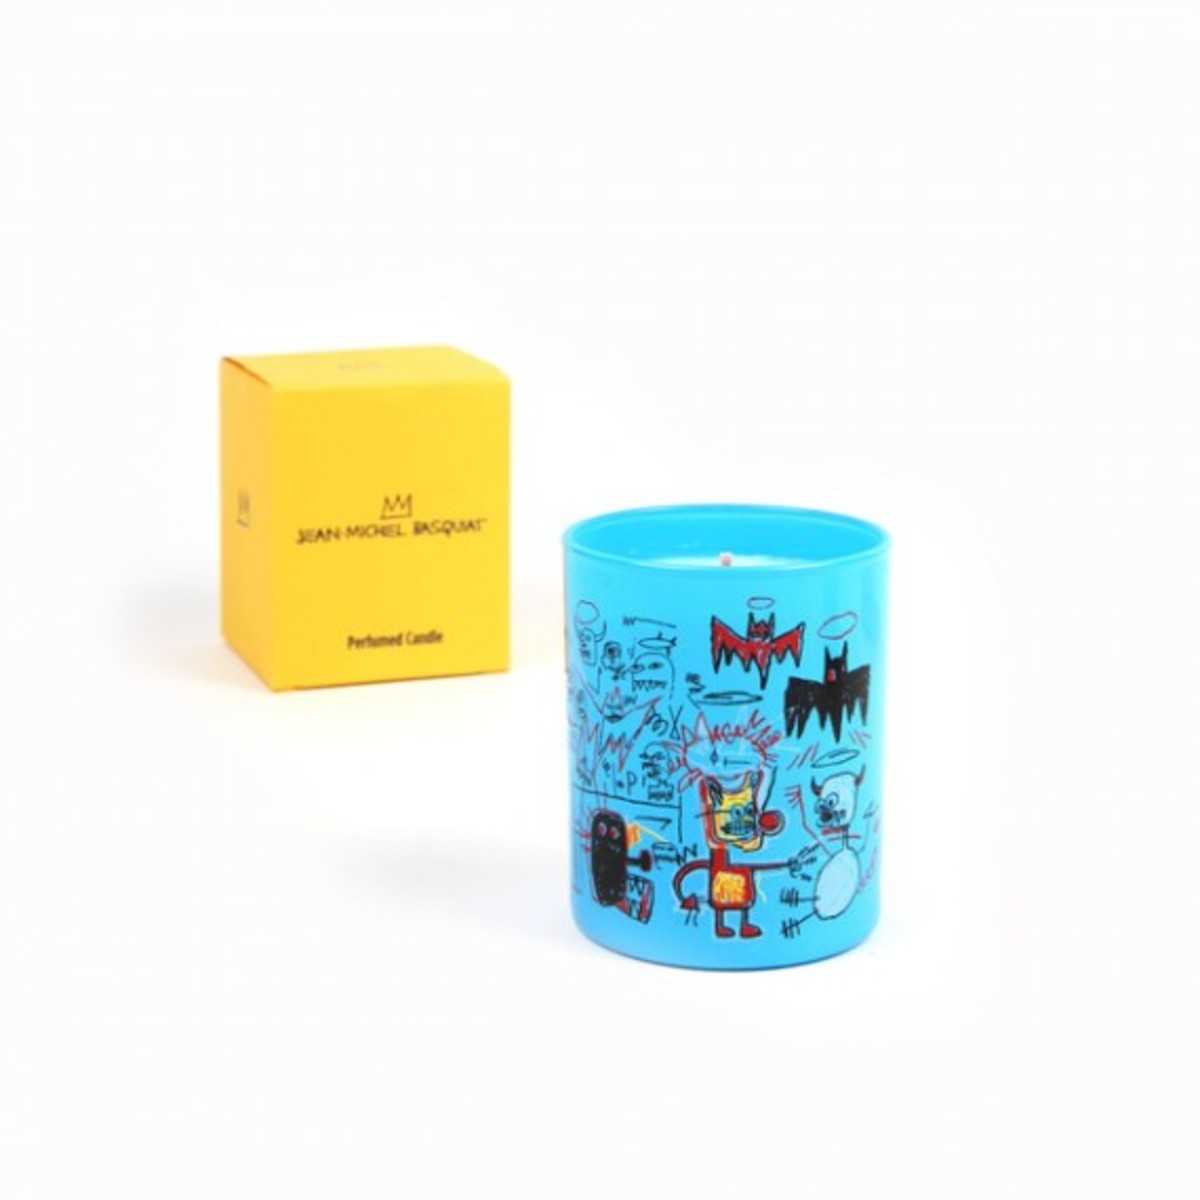 ligne-blanche-jean-michel-basquiat-perfumed-candle-03